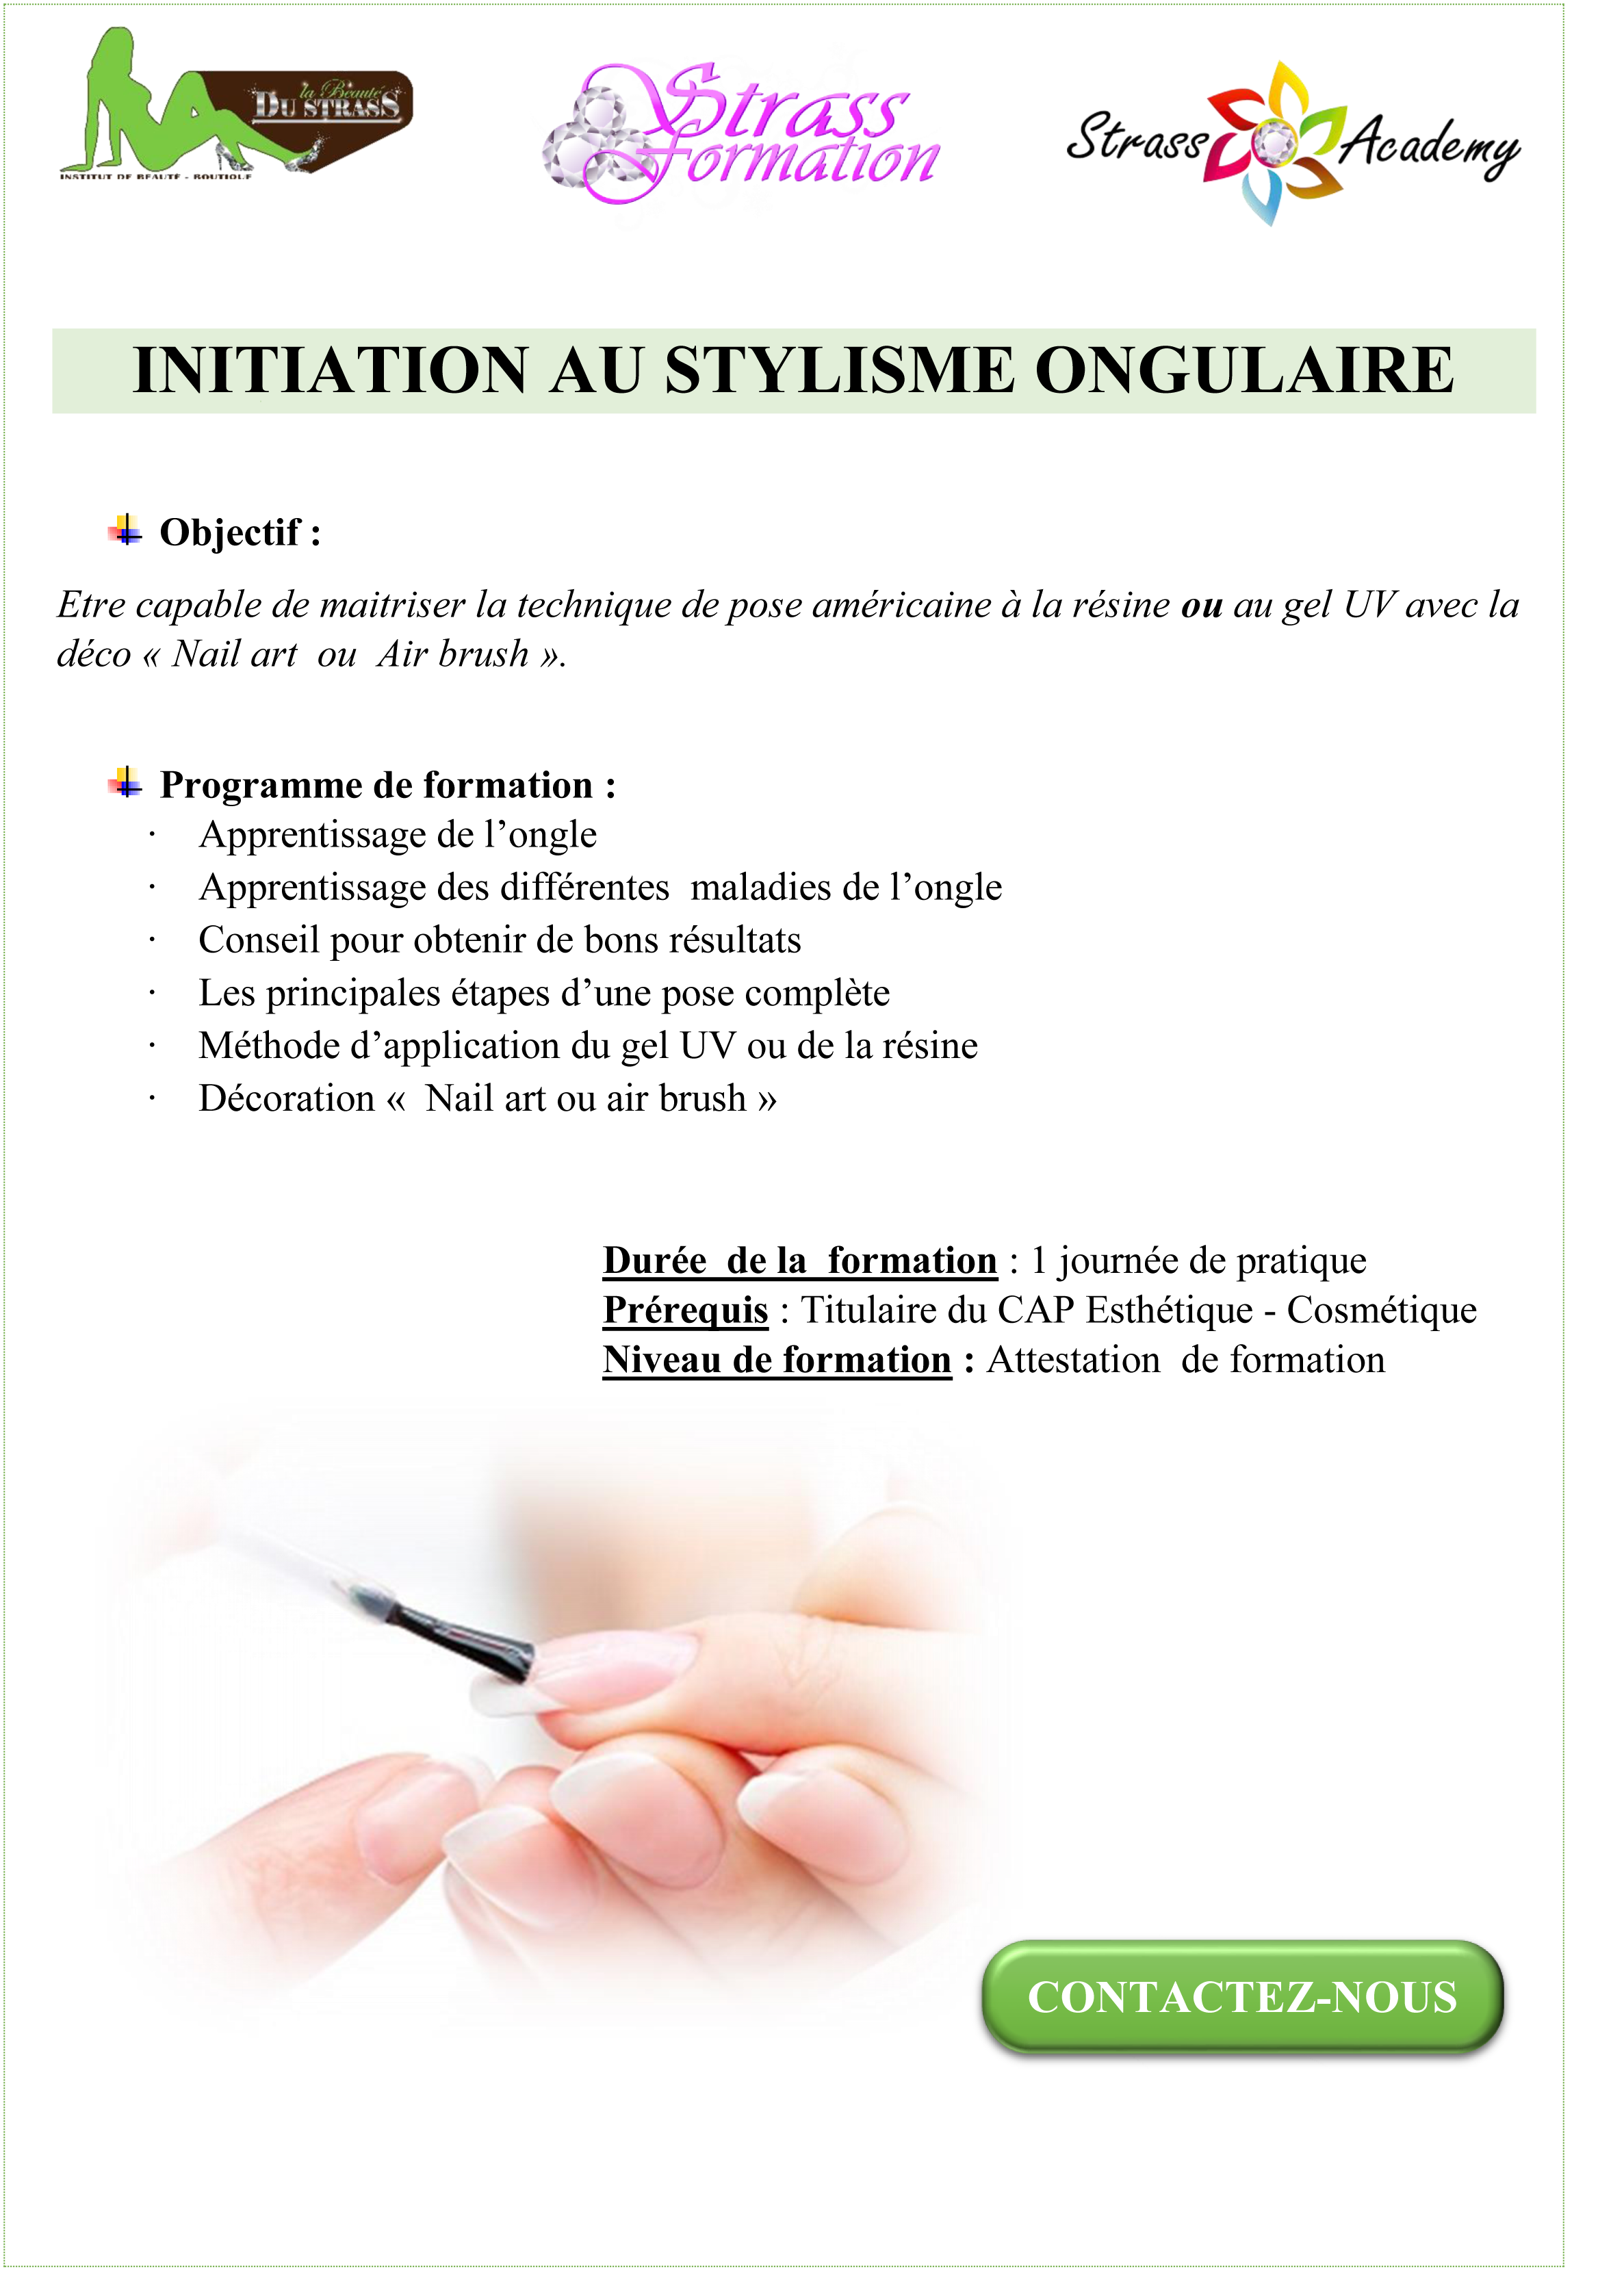 INITIATION AU STYLISME ONGULAIRE